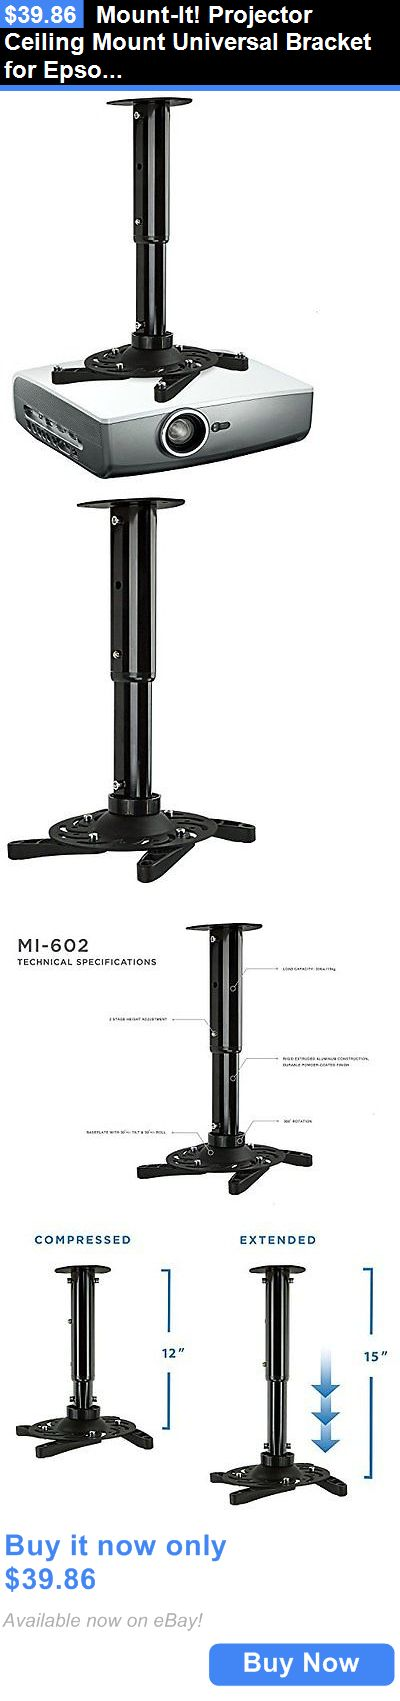 Projector Mounts and Stands: Mount-It! Projector Ceiling Mount Universal Bracket For Epson, Benq, Optoma, ... BUY IT NOW ONLY: $39.86